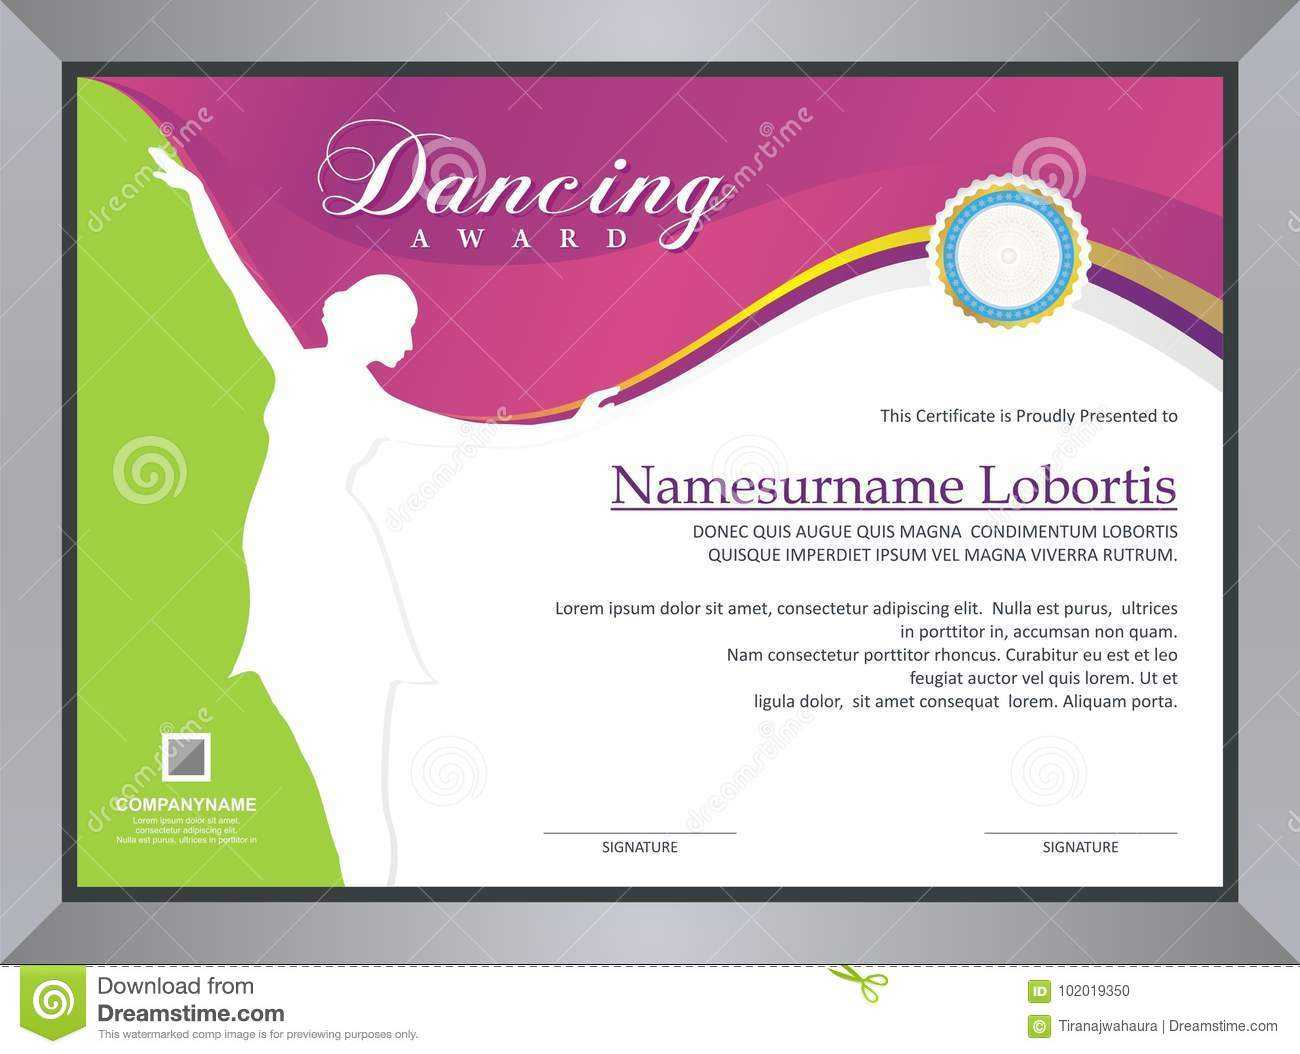 Dancing Award Stock Vector. Illustration Of Competition With Dance Certificate Template